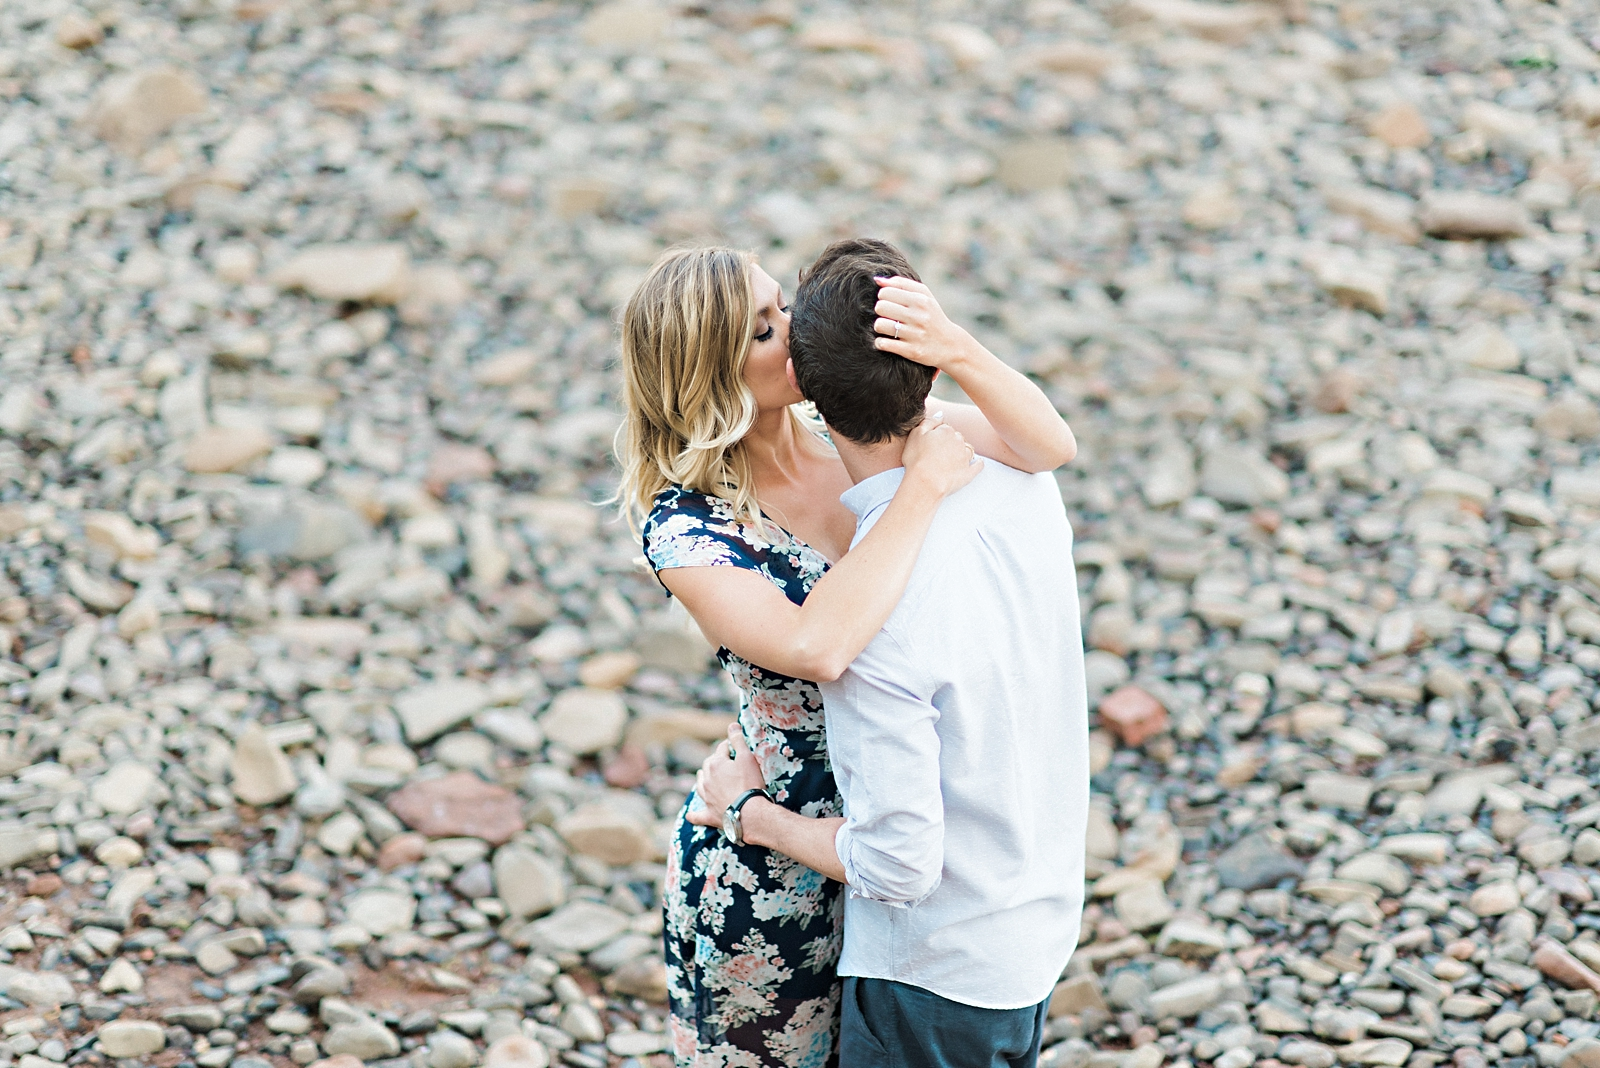 Halifax-Wedding-Photographer_Steph & Alex_Halifax Wedding Photography_Valley Engagement_14.jpg